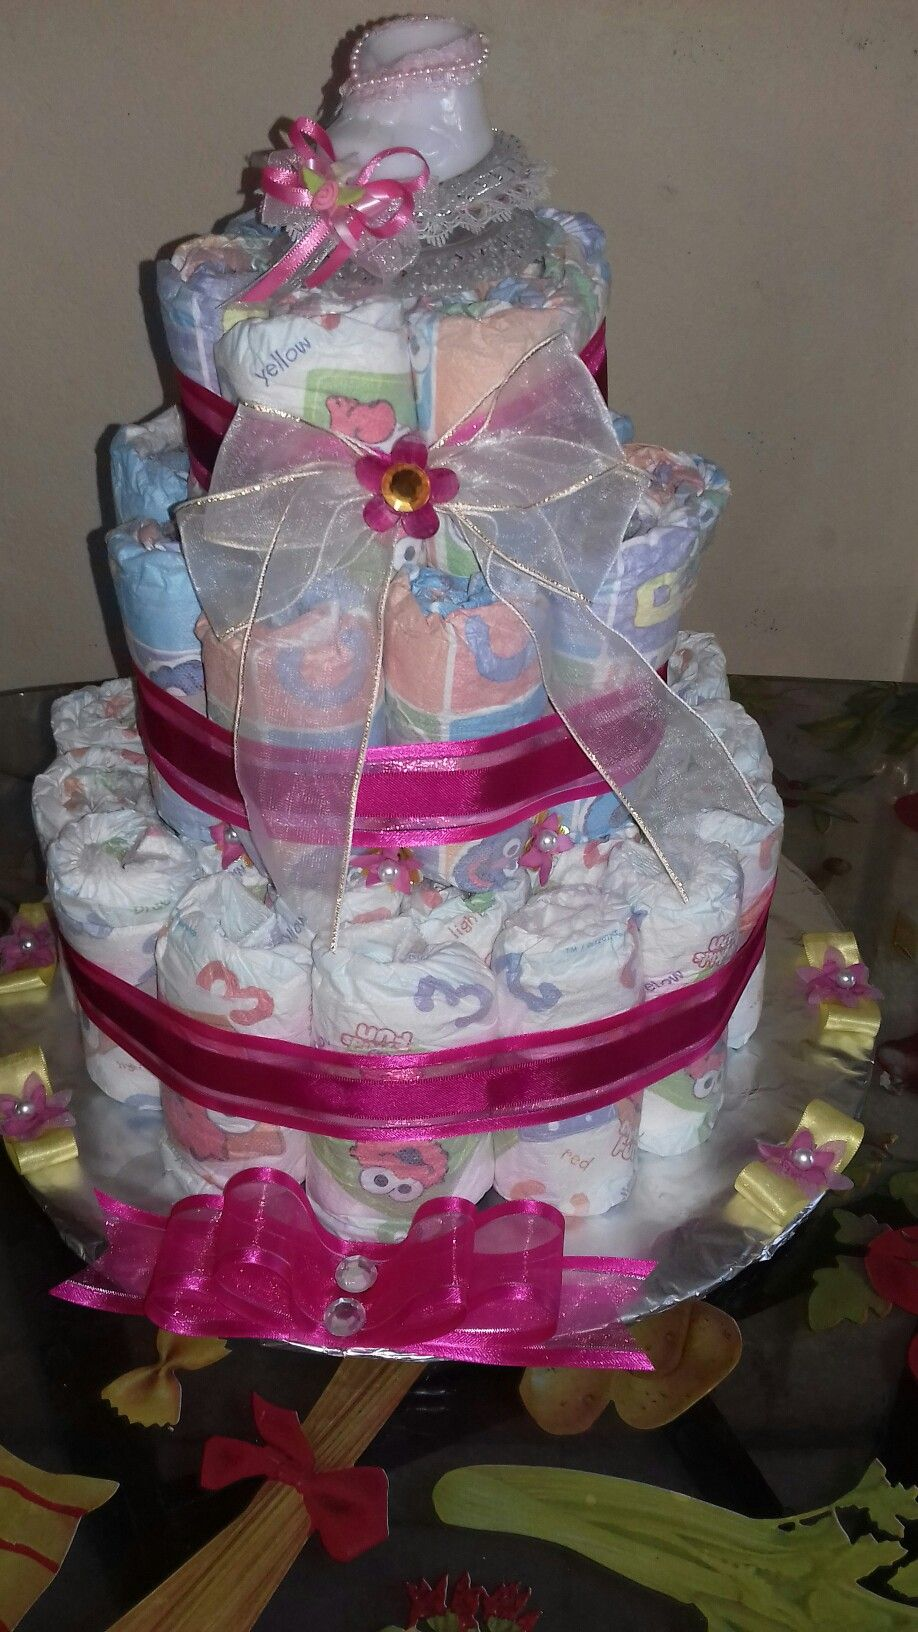 DIY DIAPER CAKE!! so much fun creating it. Easy and